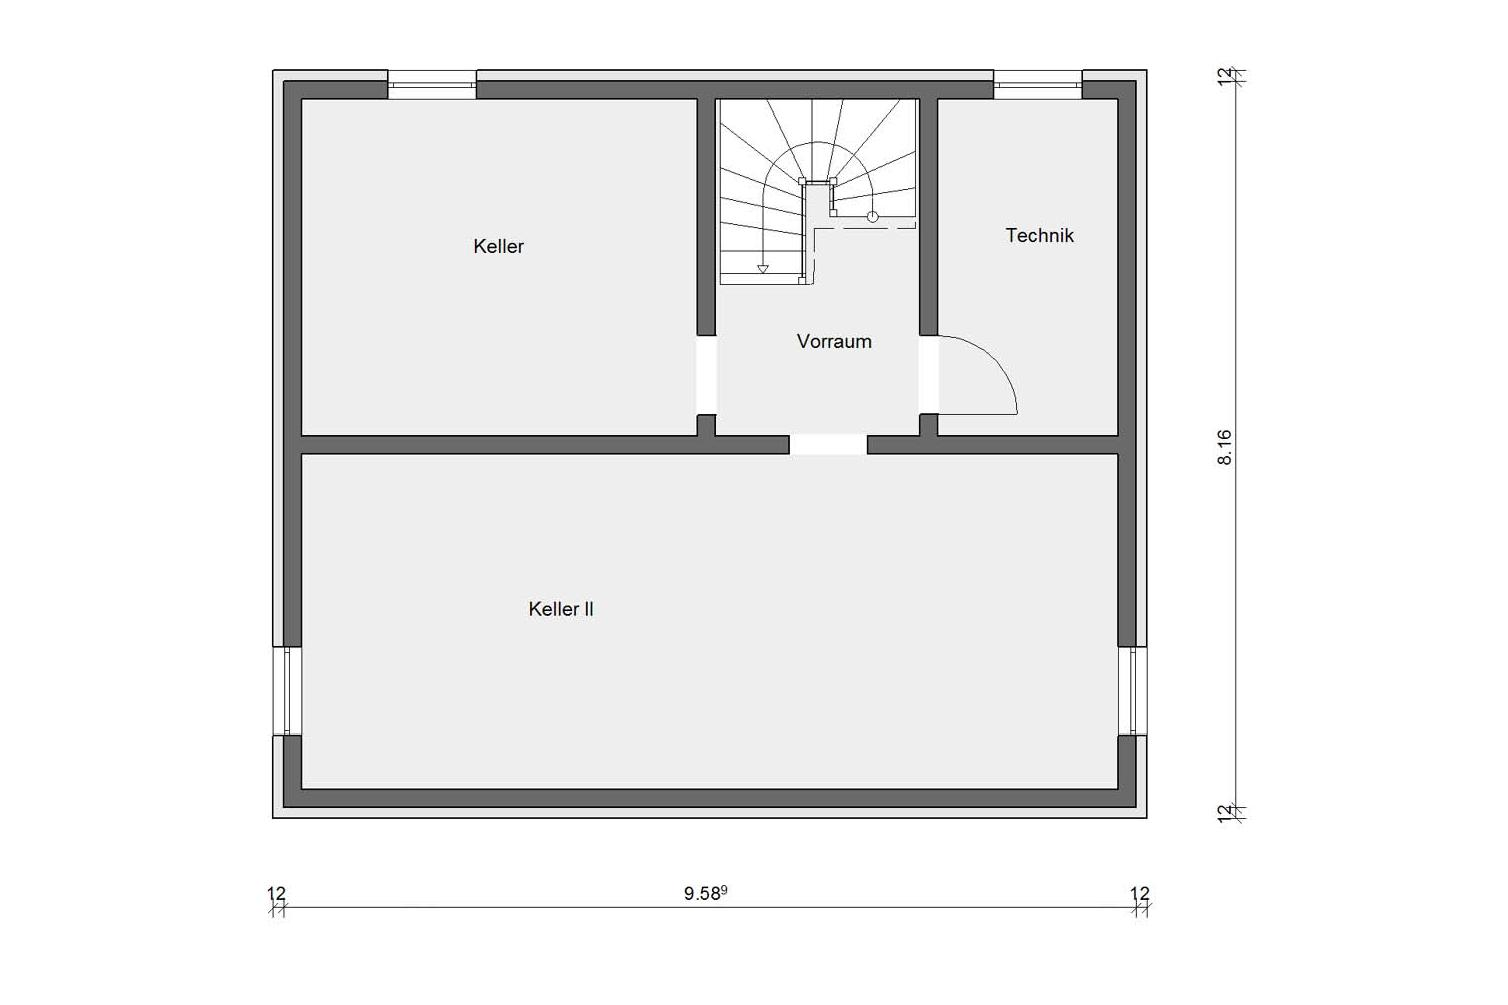 Floor plan basement E 15-137.4 Detached house with pitched roof